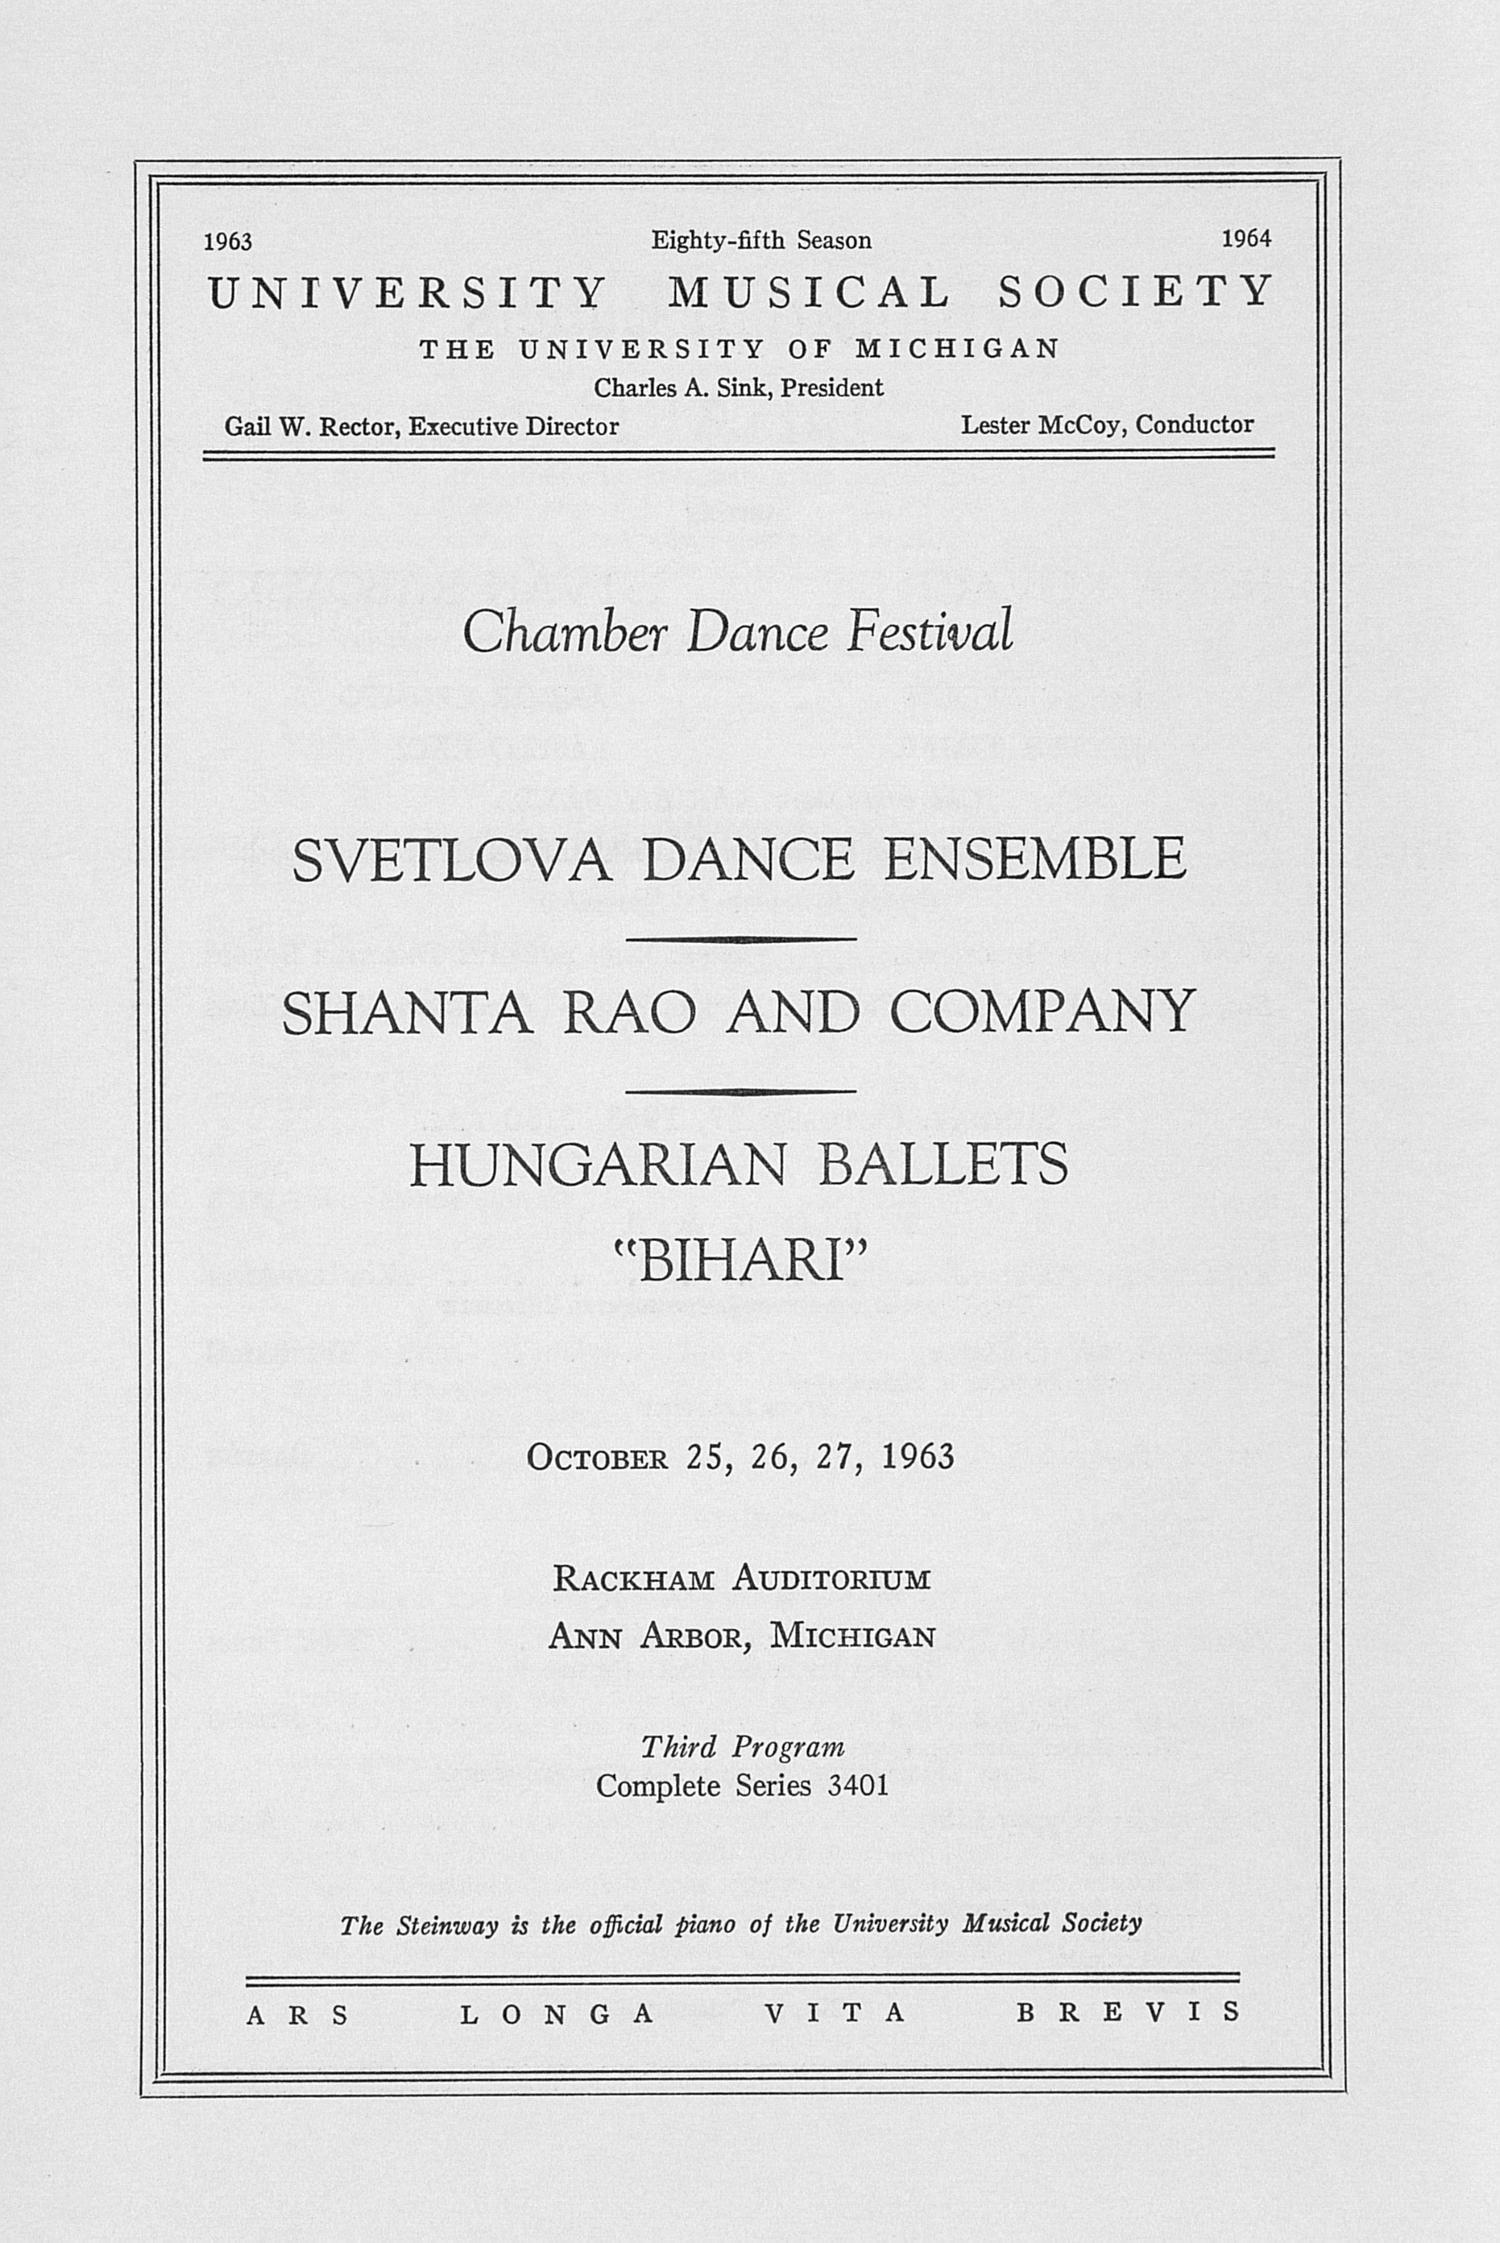 UMS Concert Program, October 25, 26, 27, 1963: Chamber Dance Festival --  image